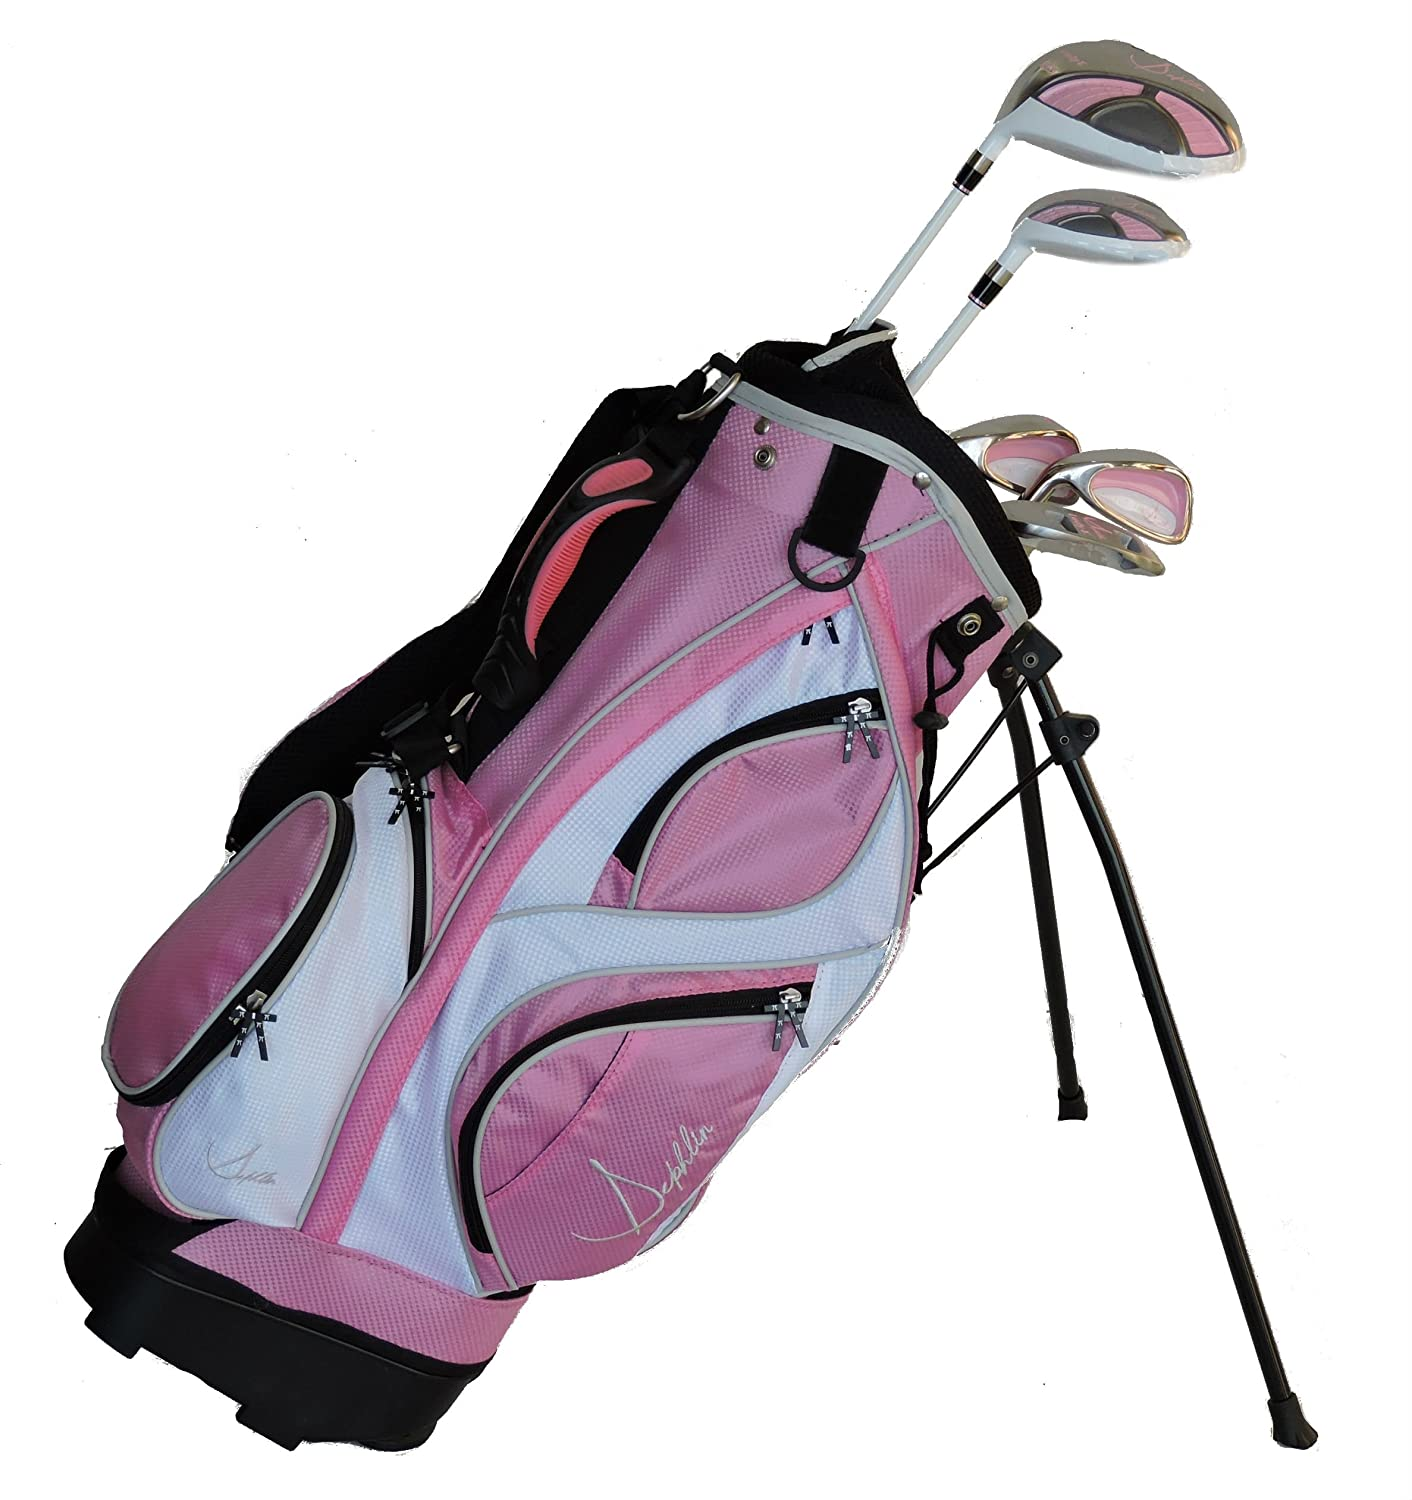 sephlin - Lady Jayde rosa niñas Golf Club Set y bolsa de ...